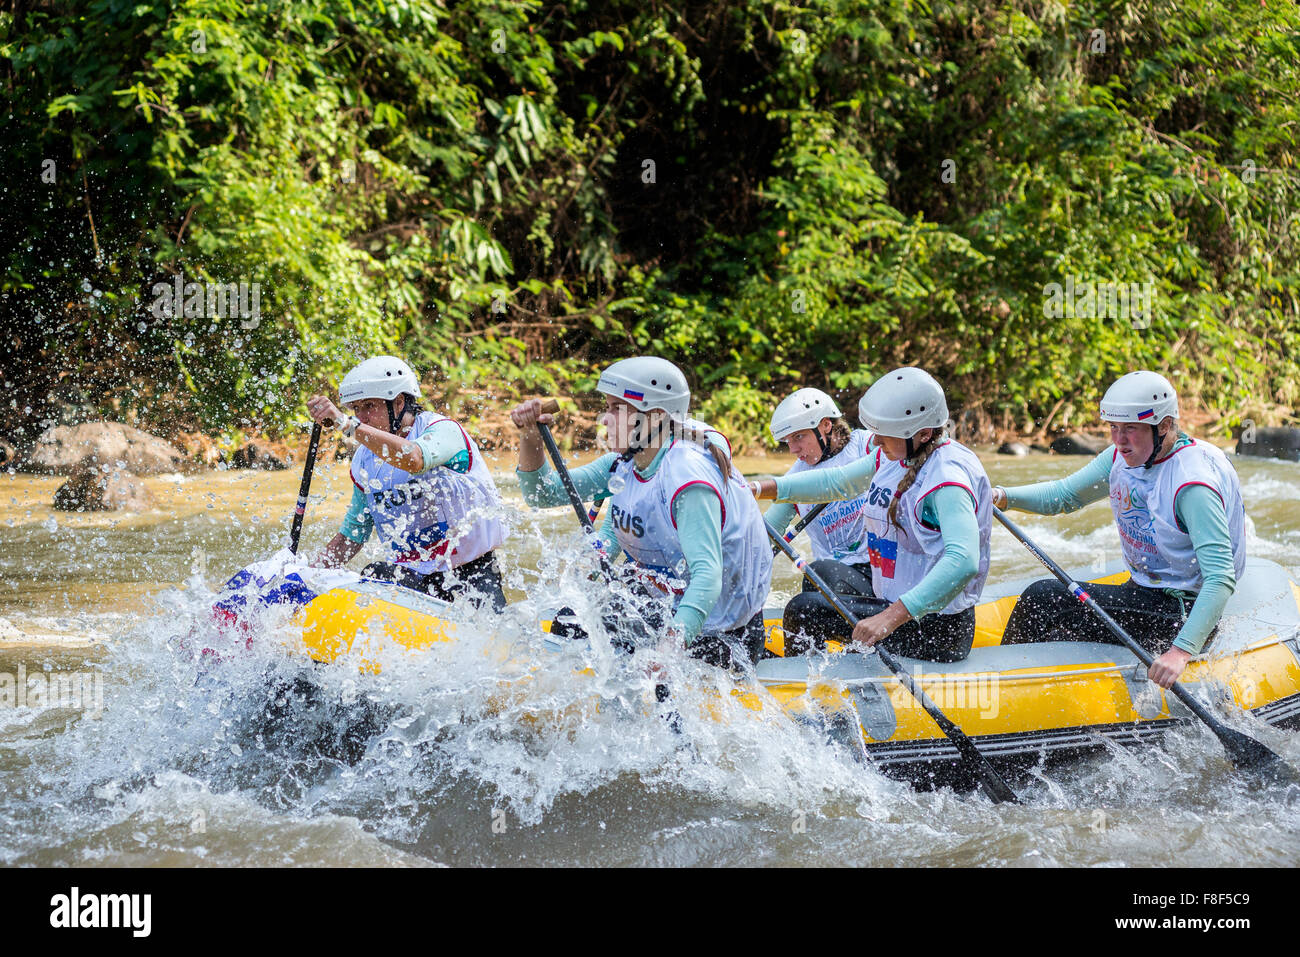 Russian U19 women's team during sprint race category on 2015 World Rafting Championships. - Stock Image